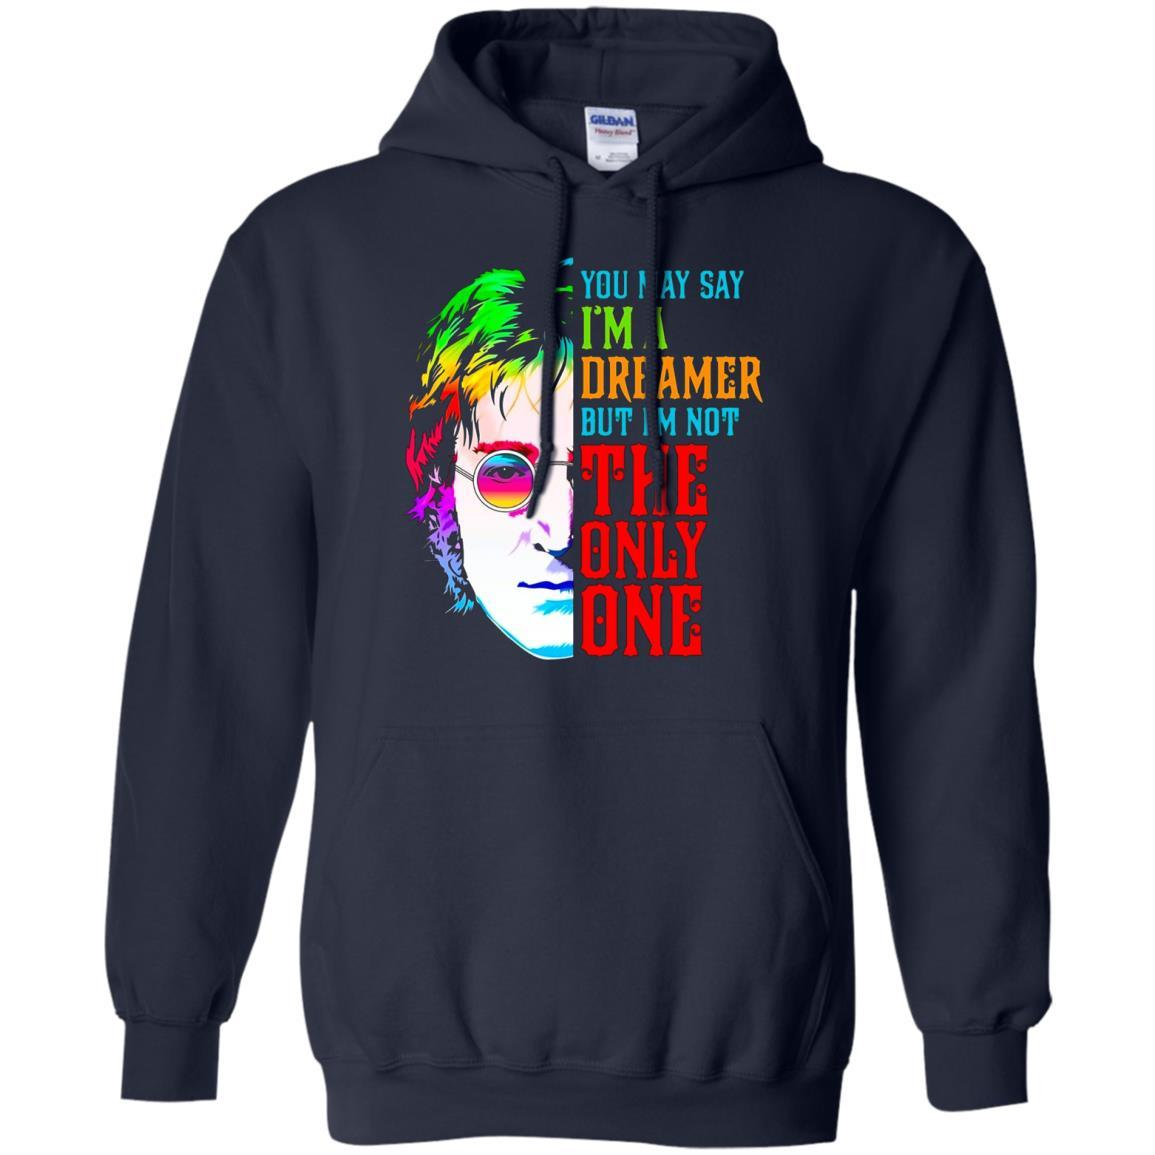 You May Say I'm Dreamer But I'm Not The Only One - Pullover Hoodie Navy / 5XL